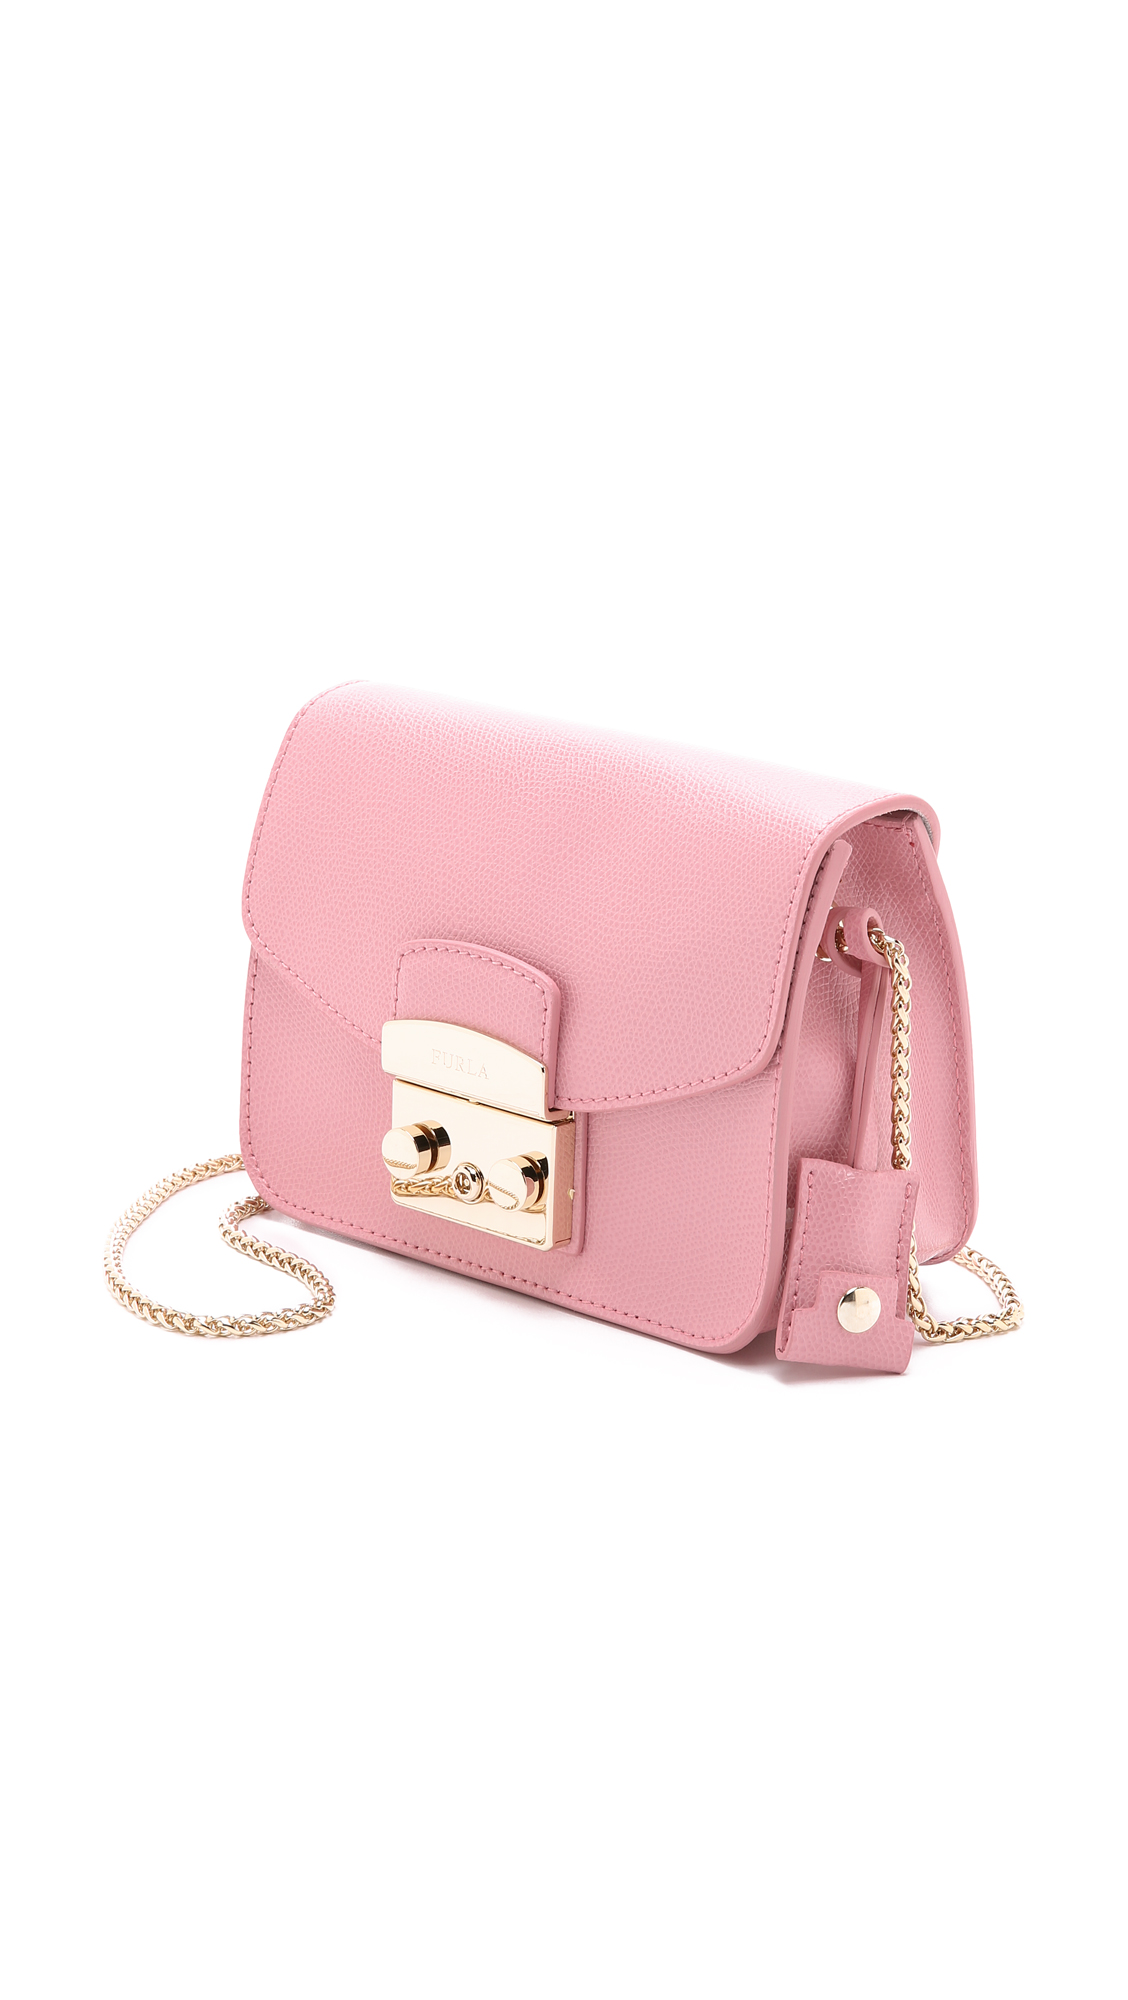 Furla Metropolis Mini Cross Body Bag Shopbop Crossbody Authentic